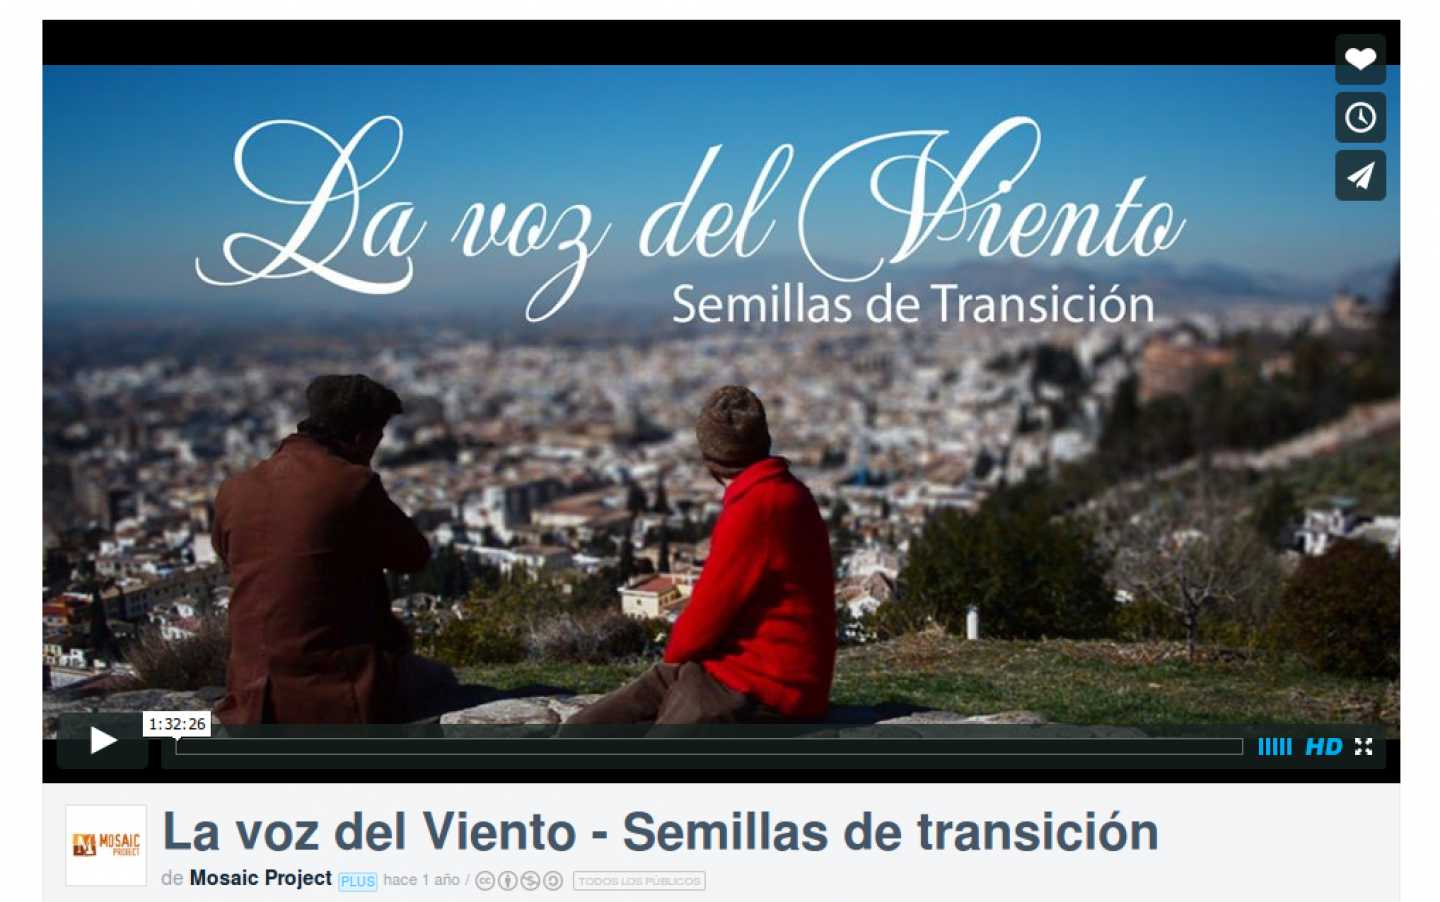 La voz del Viento - Semillas de transición. Video documental